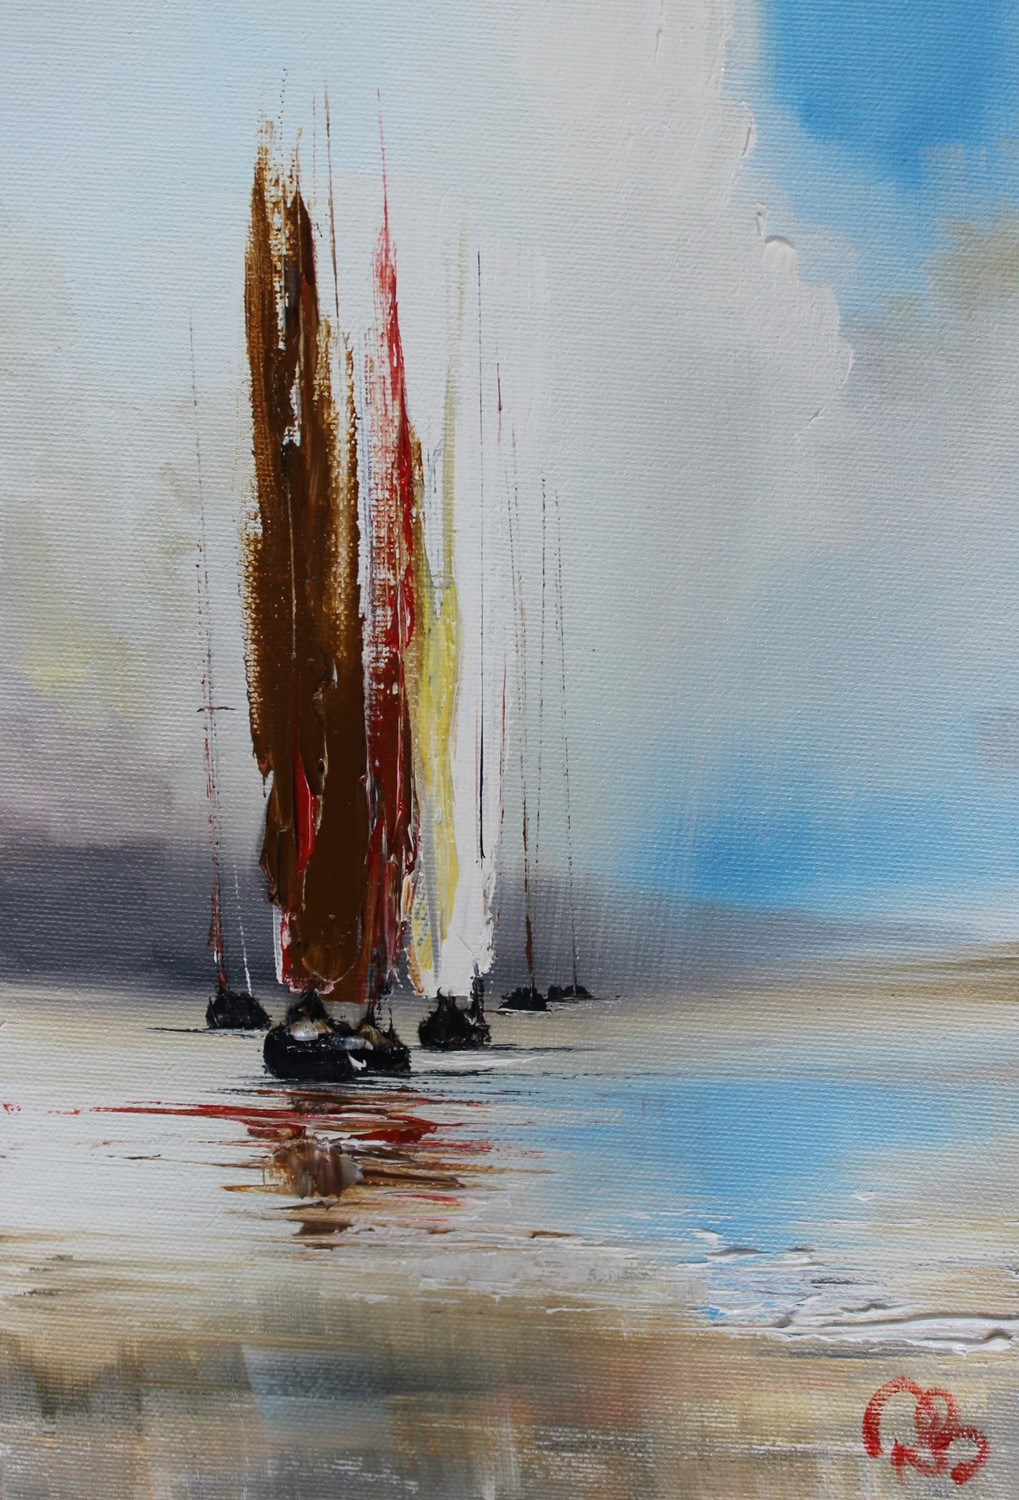 'Sailing in rain showers' by artist Rosanne Barr